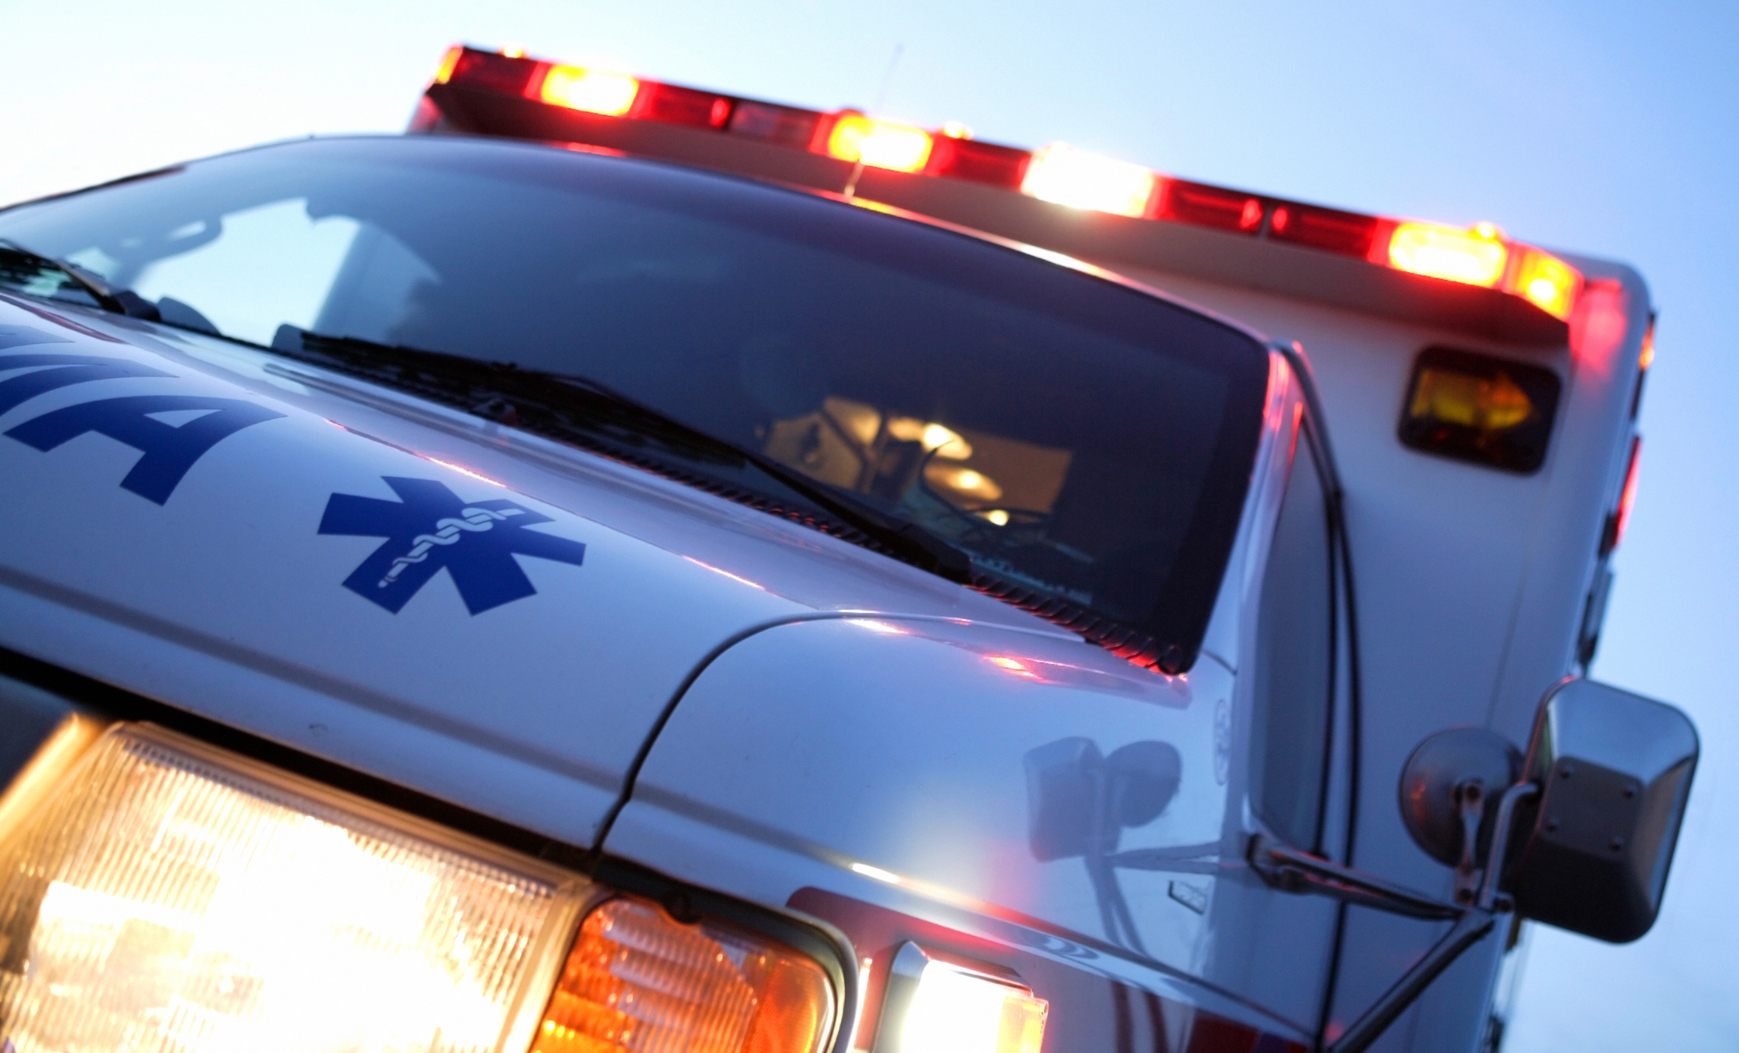 Connecticut woman injured in Herkimer County ATV crash, state police say